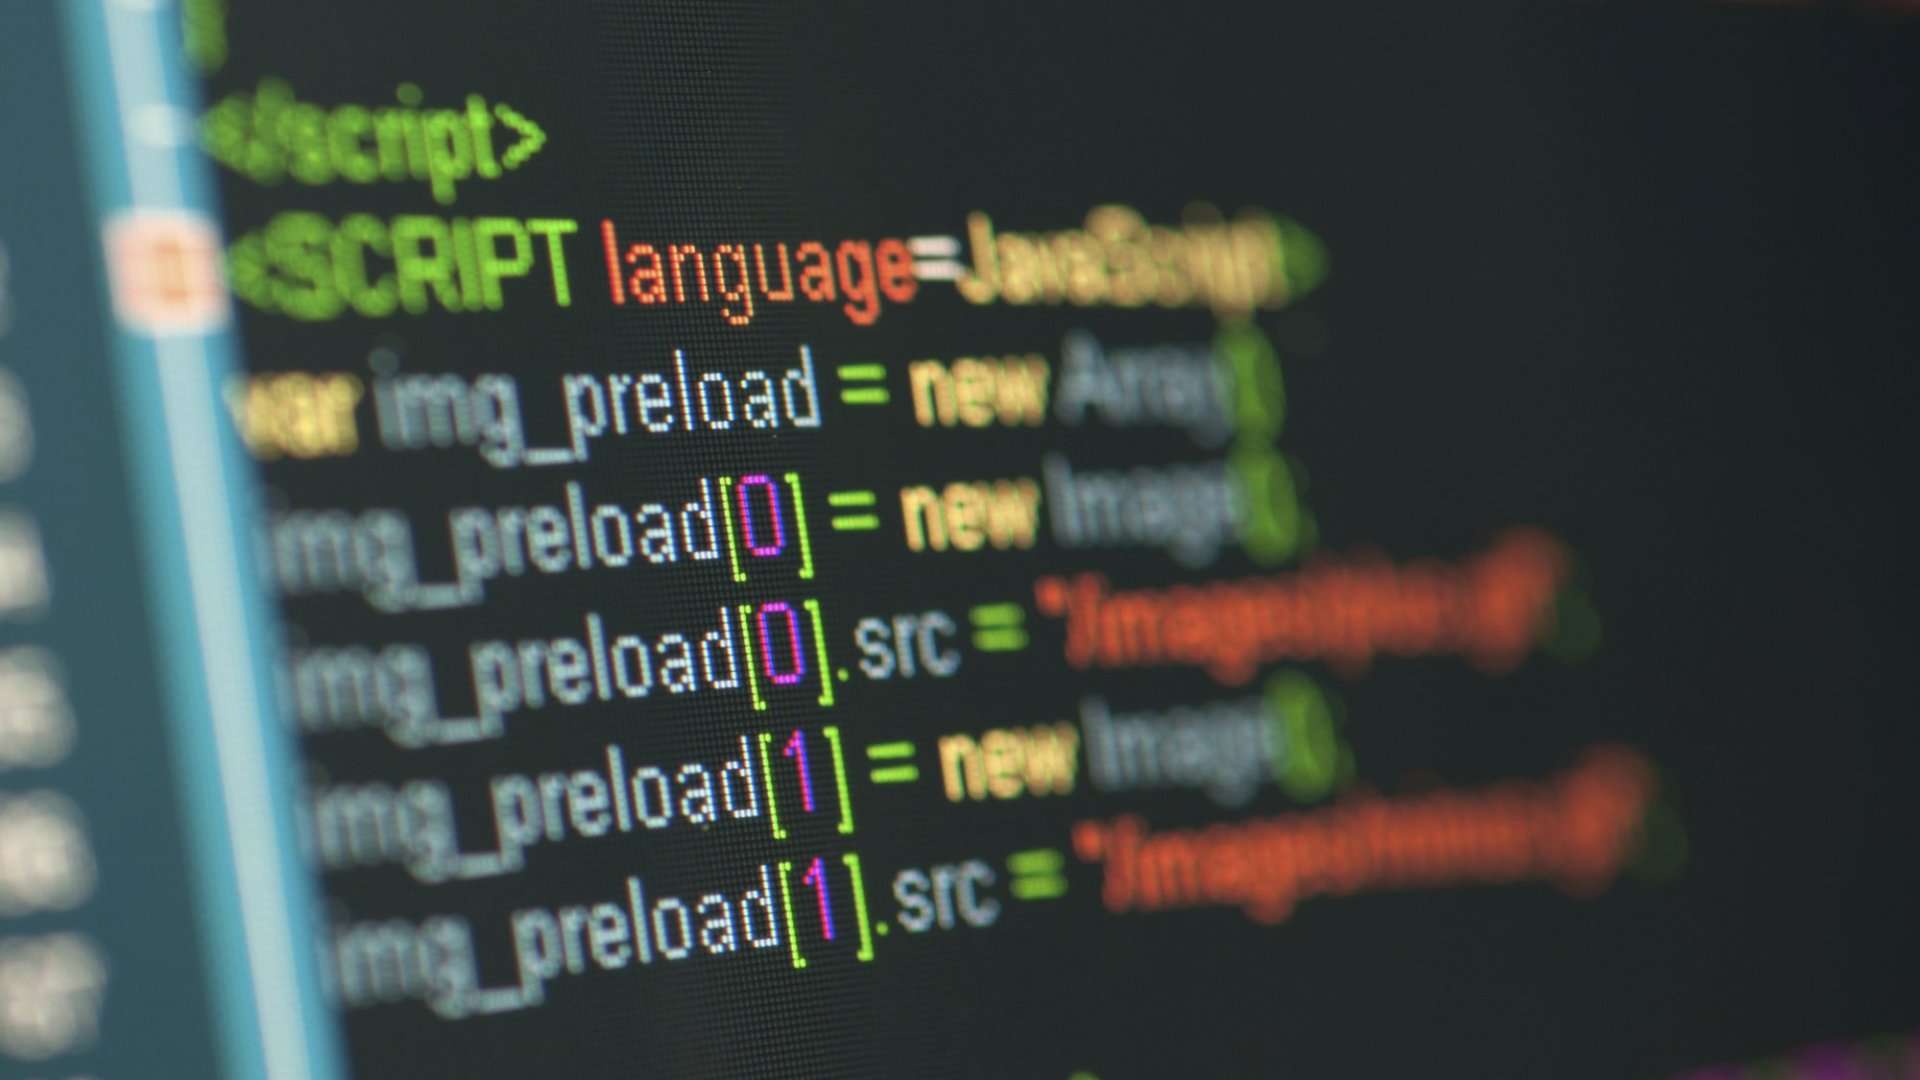 Code is used in almost every aspect of modern daily life